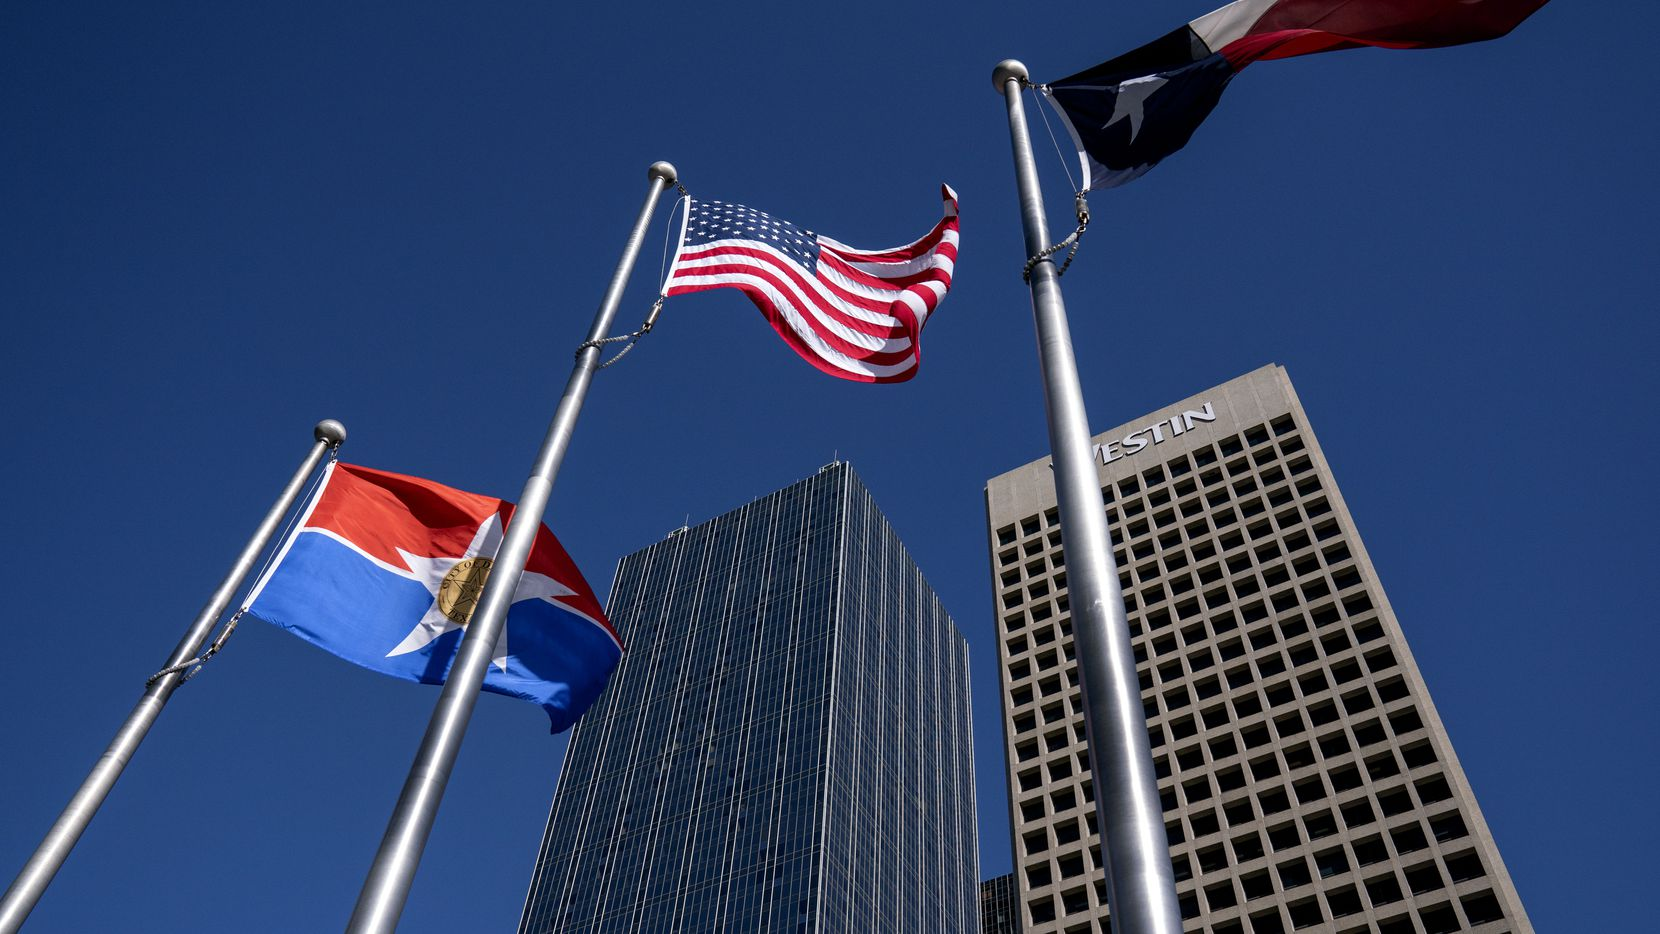 The flags of the City of Dallas, United States and Texas fly in front of Renaissance Tower in downtown Dallas.